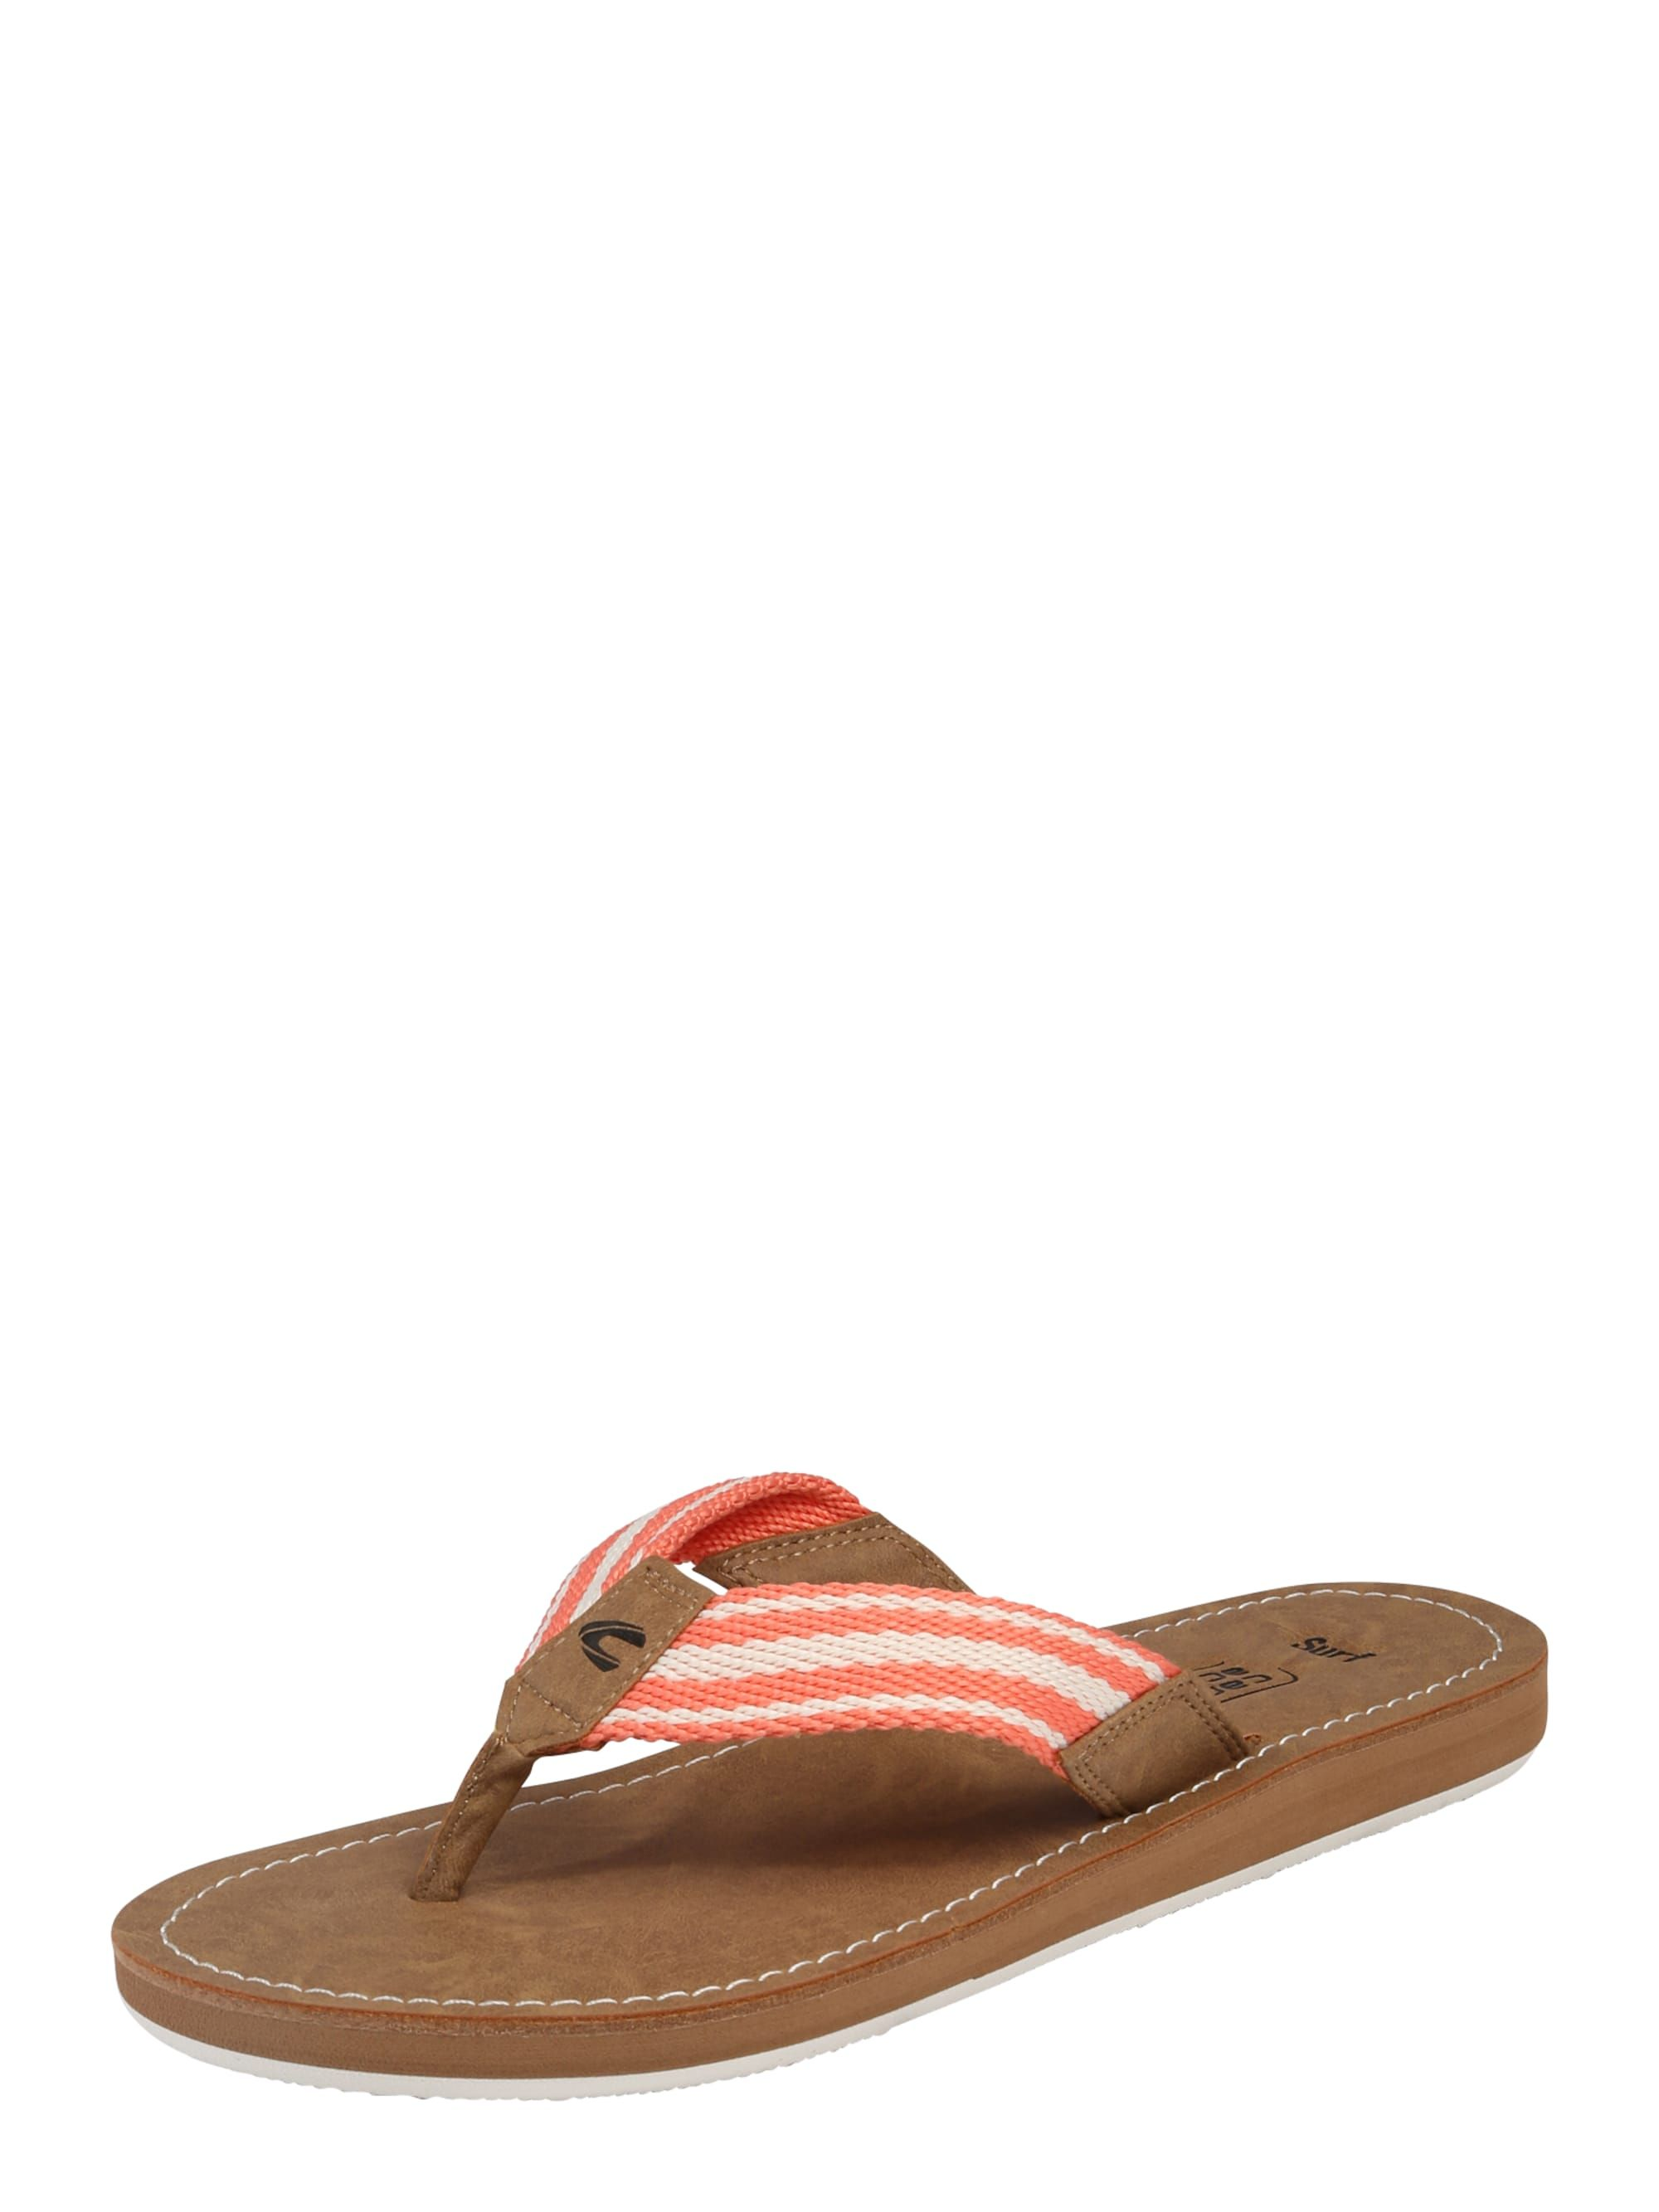 Active Damen 04046599653544 Surf Camel Zehentrennersandale Silber wB5xqY5r